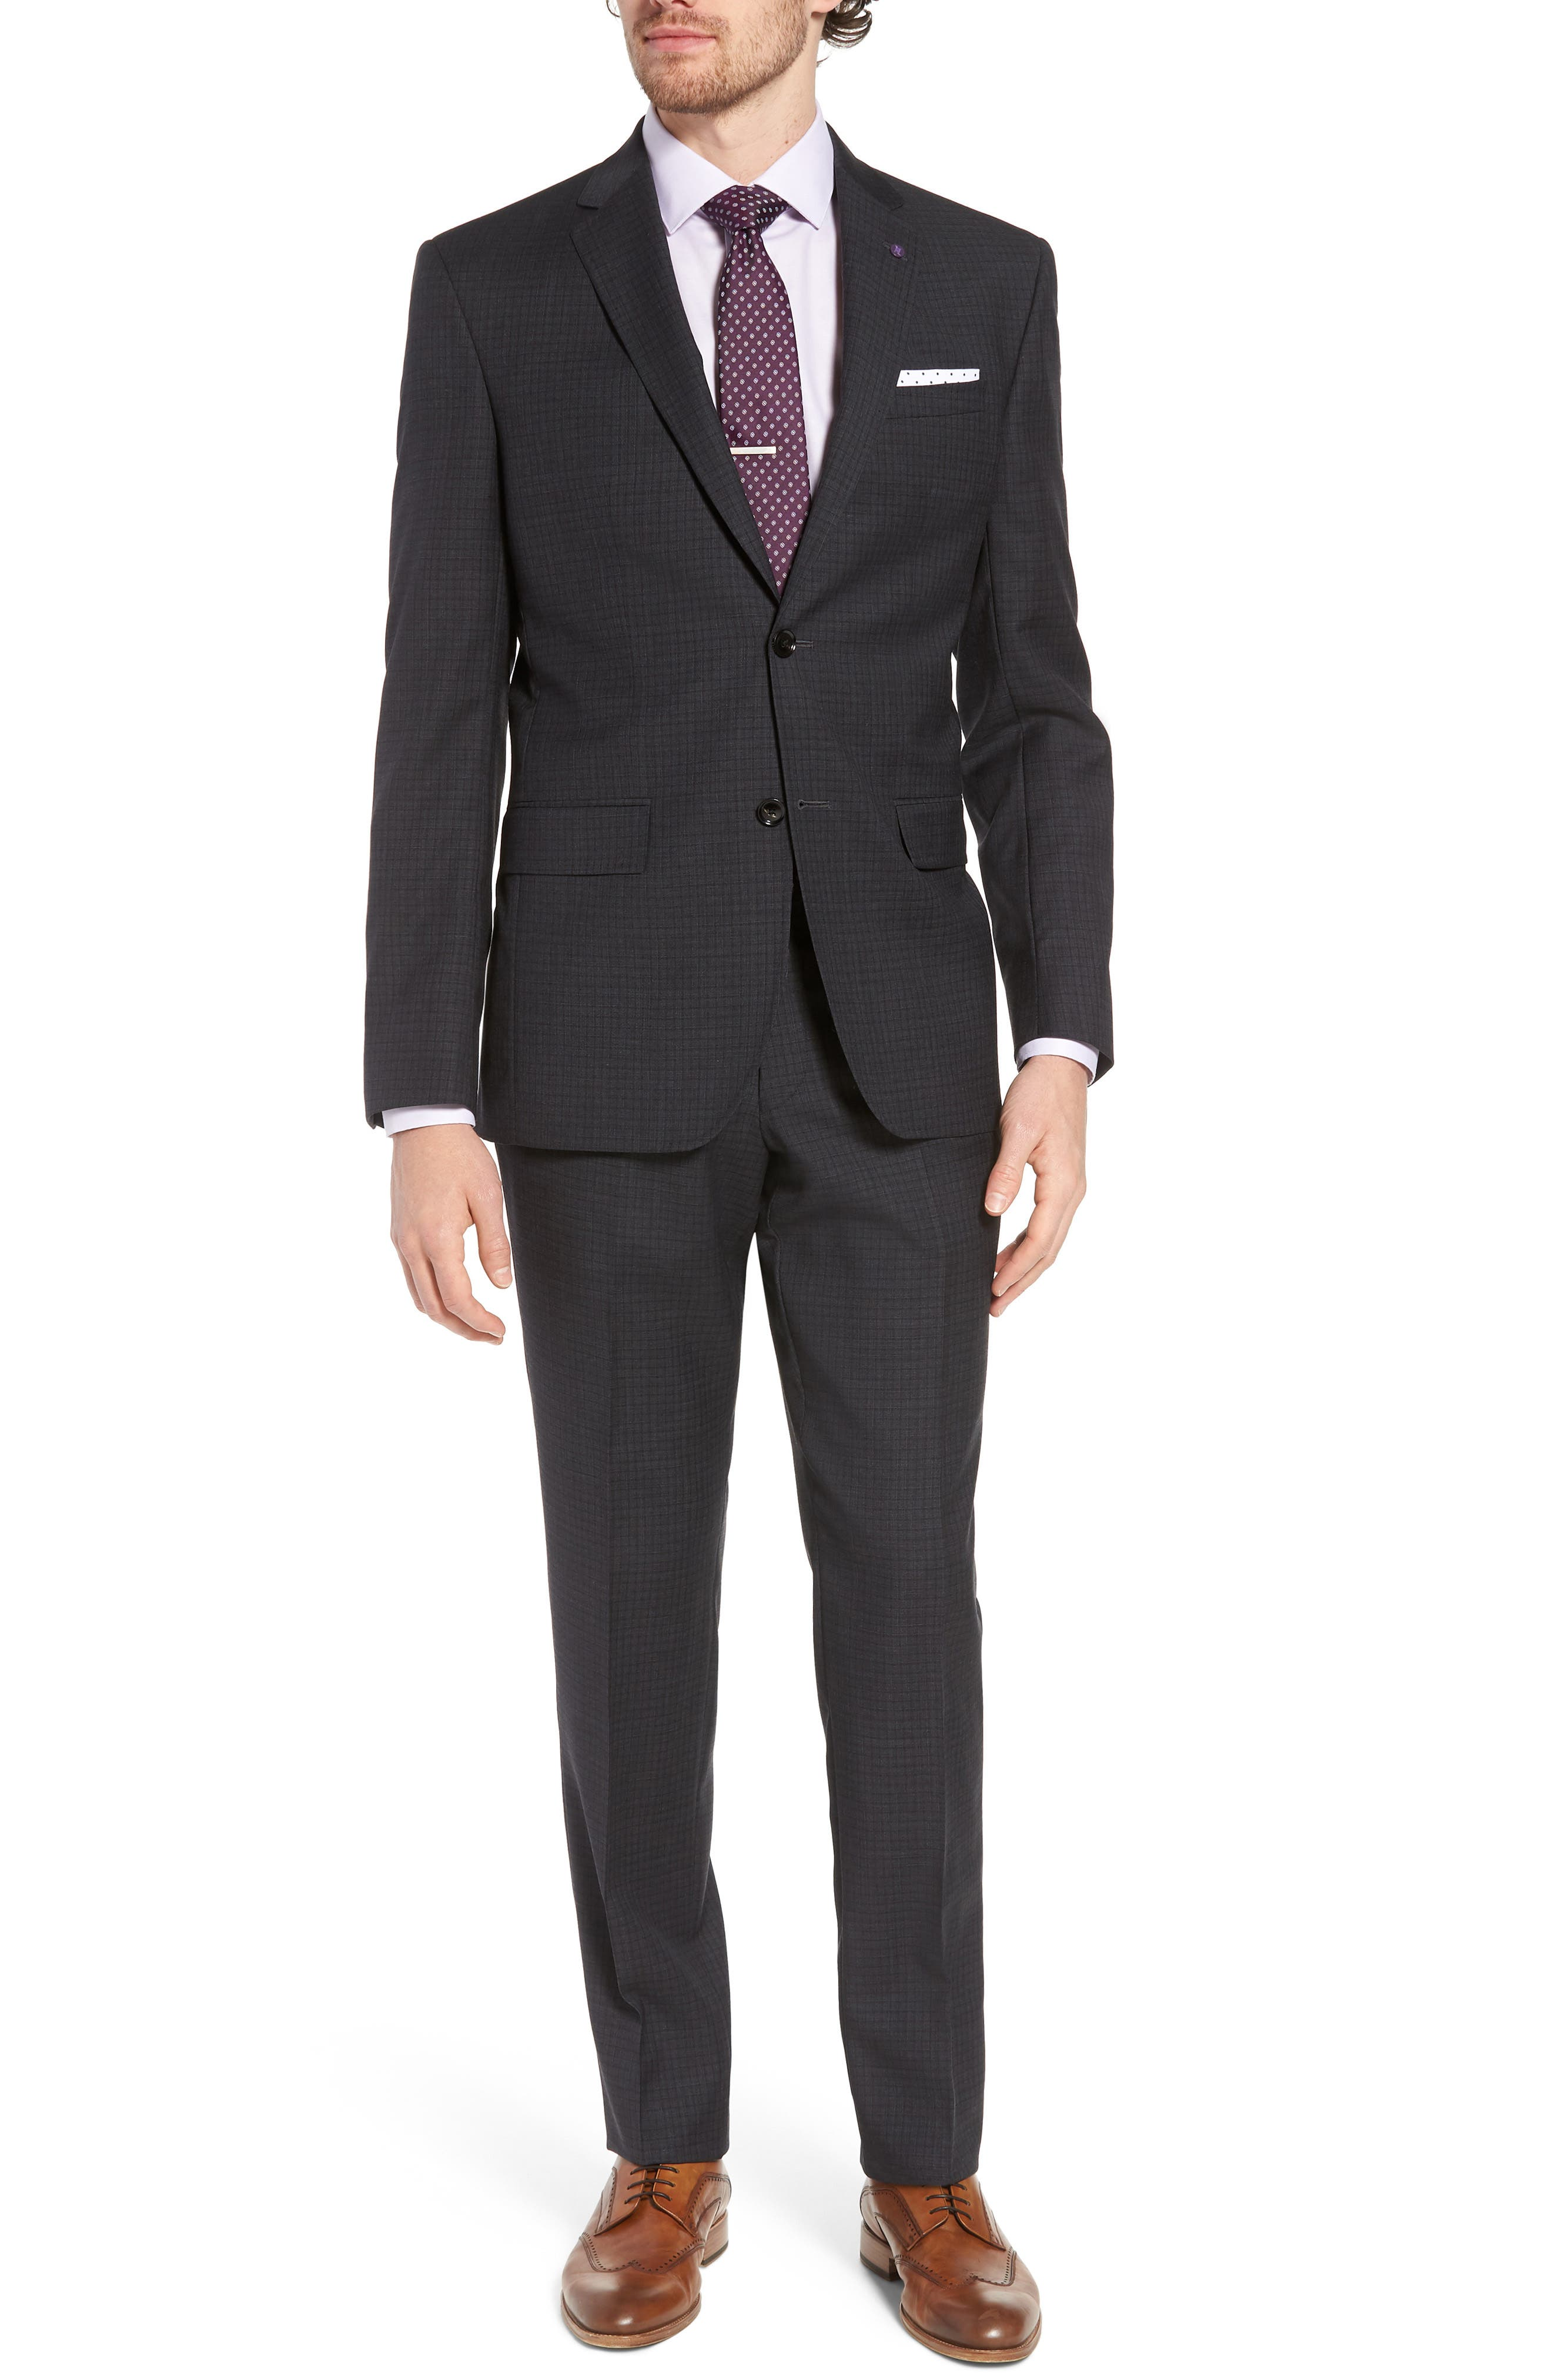 Jay Trim Fit Check Wool Suit,                         Main,                         color, Charcoal